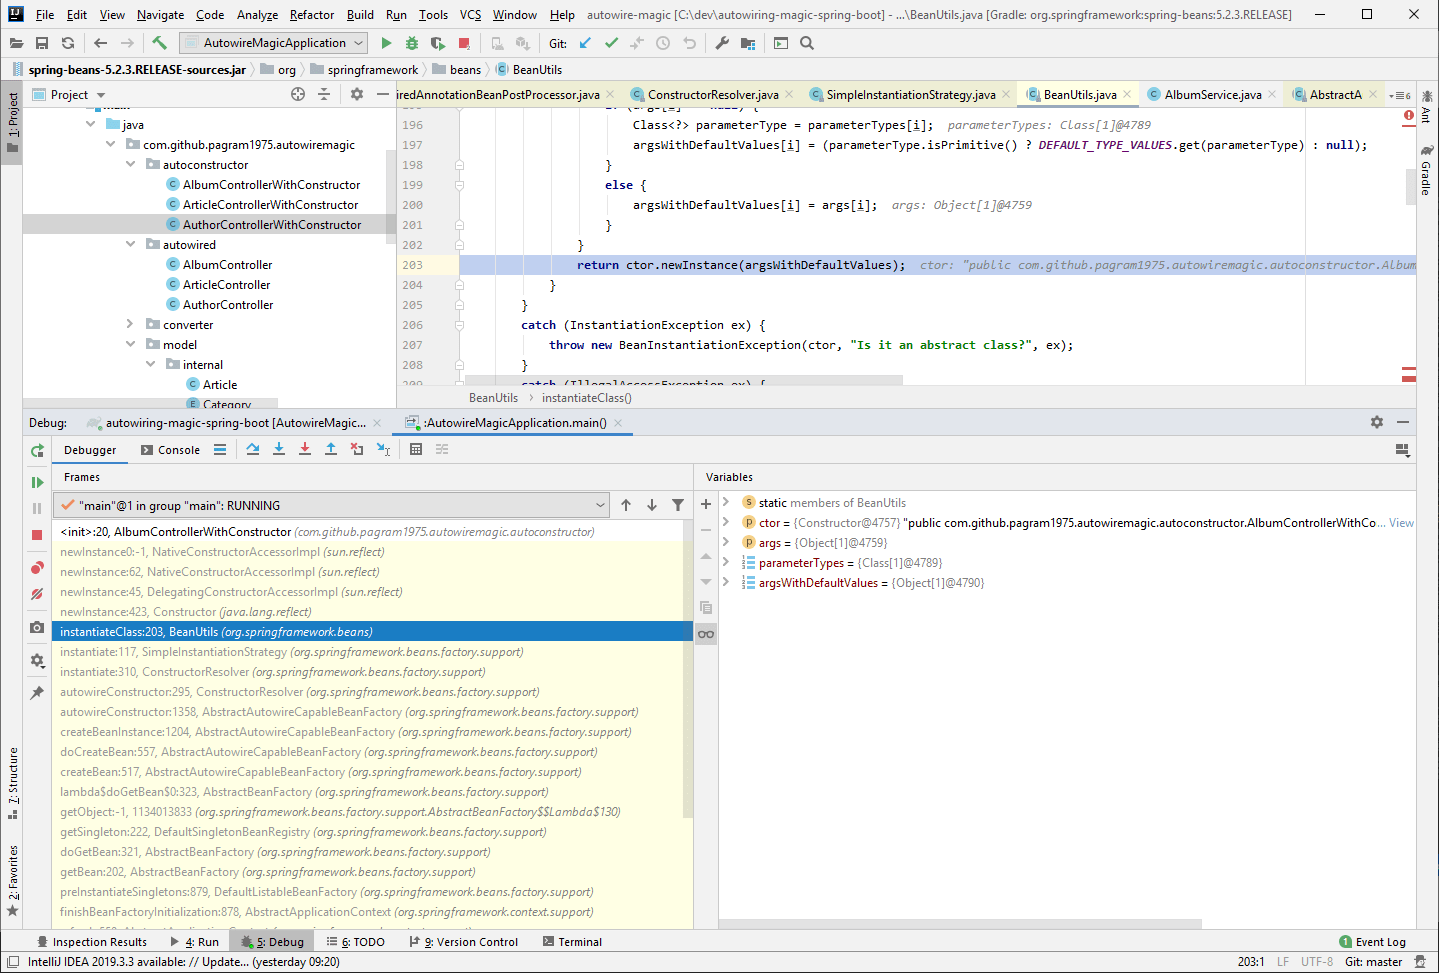 Debugging Spring in IntelliJ Idea shows the constructor is invoked via Java reflection